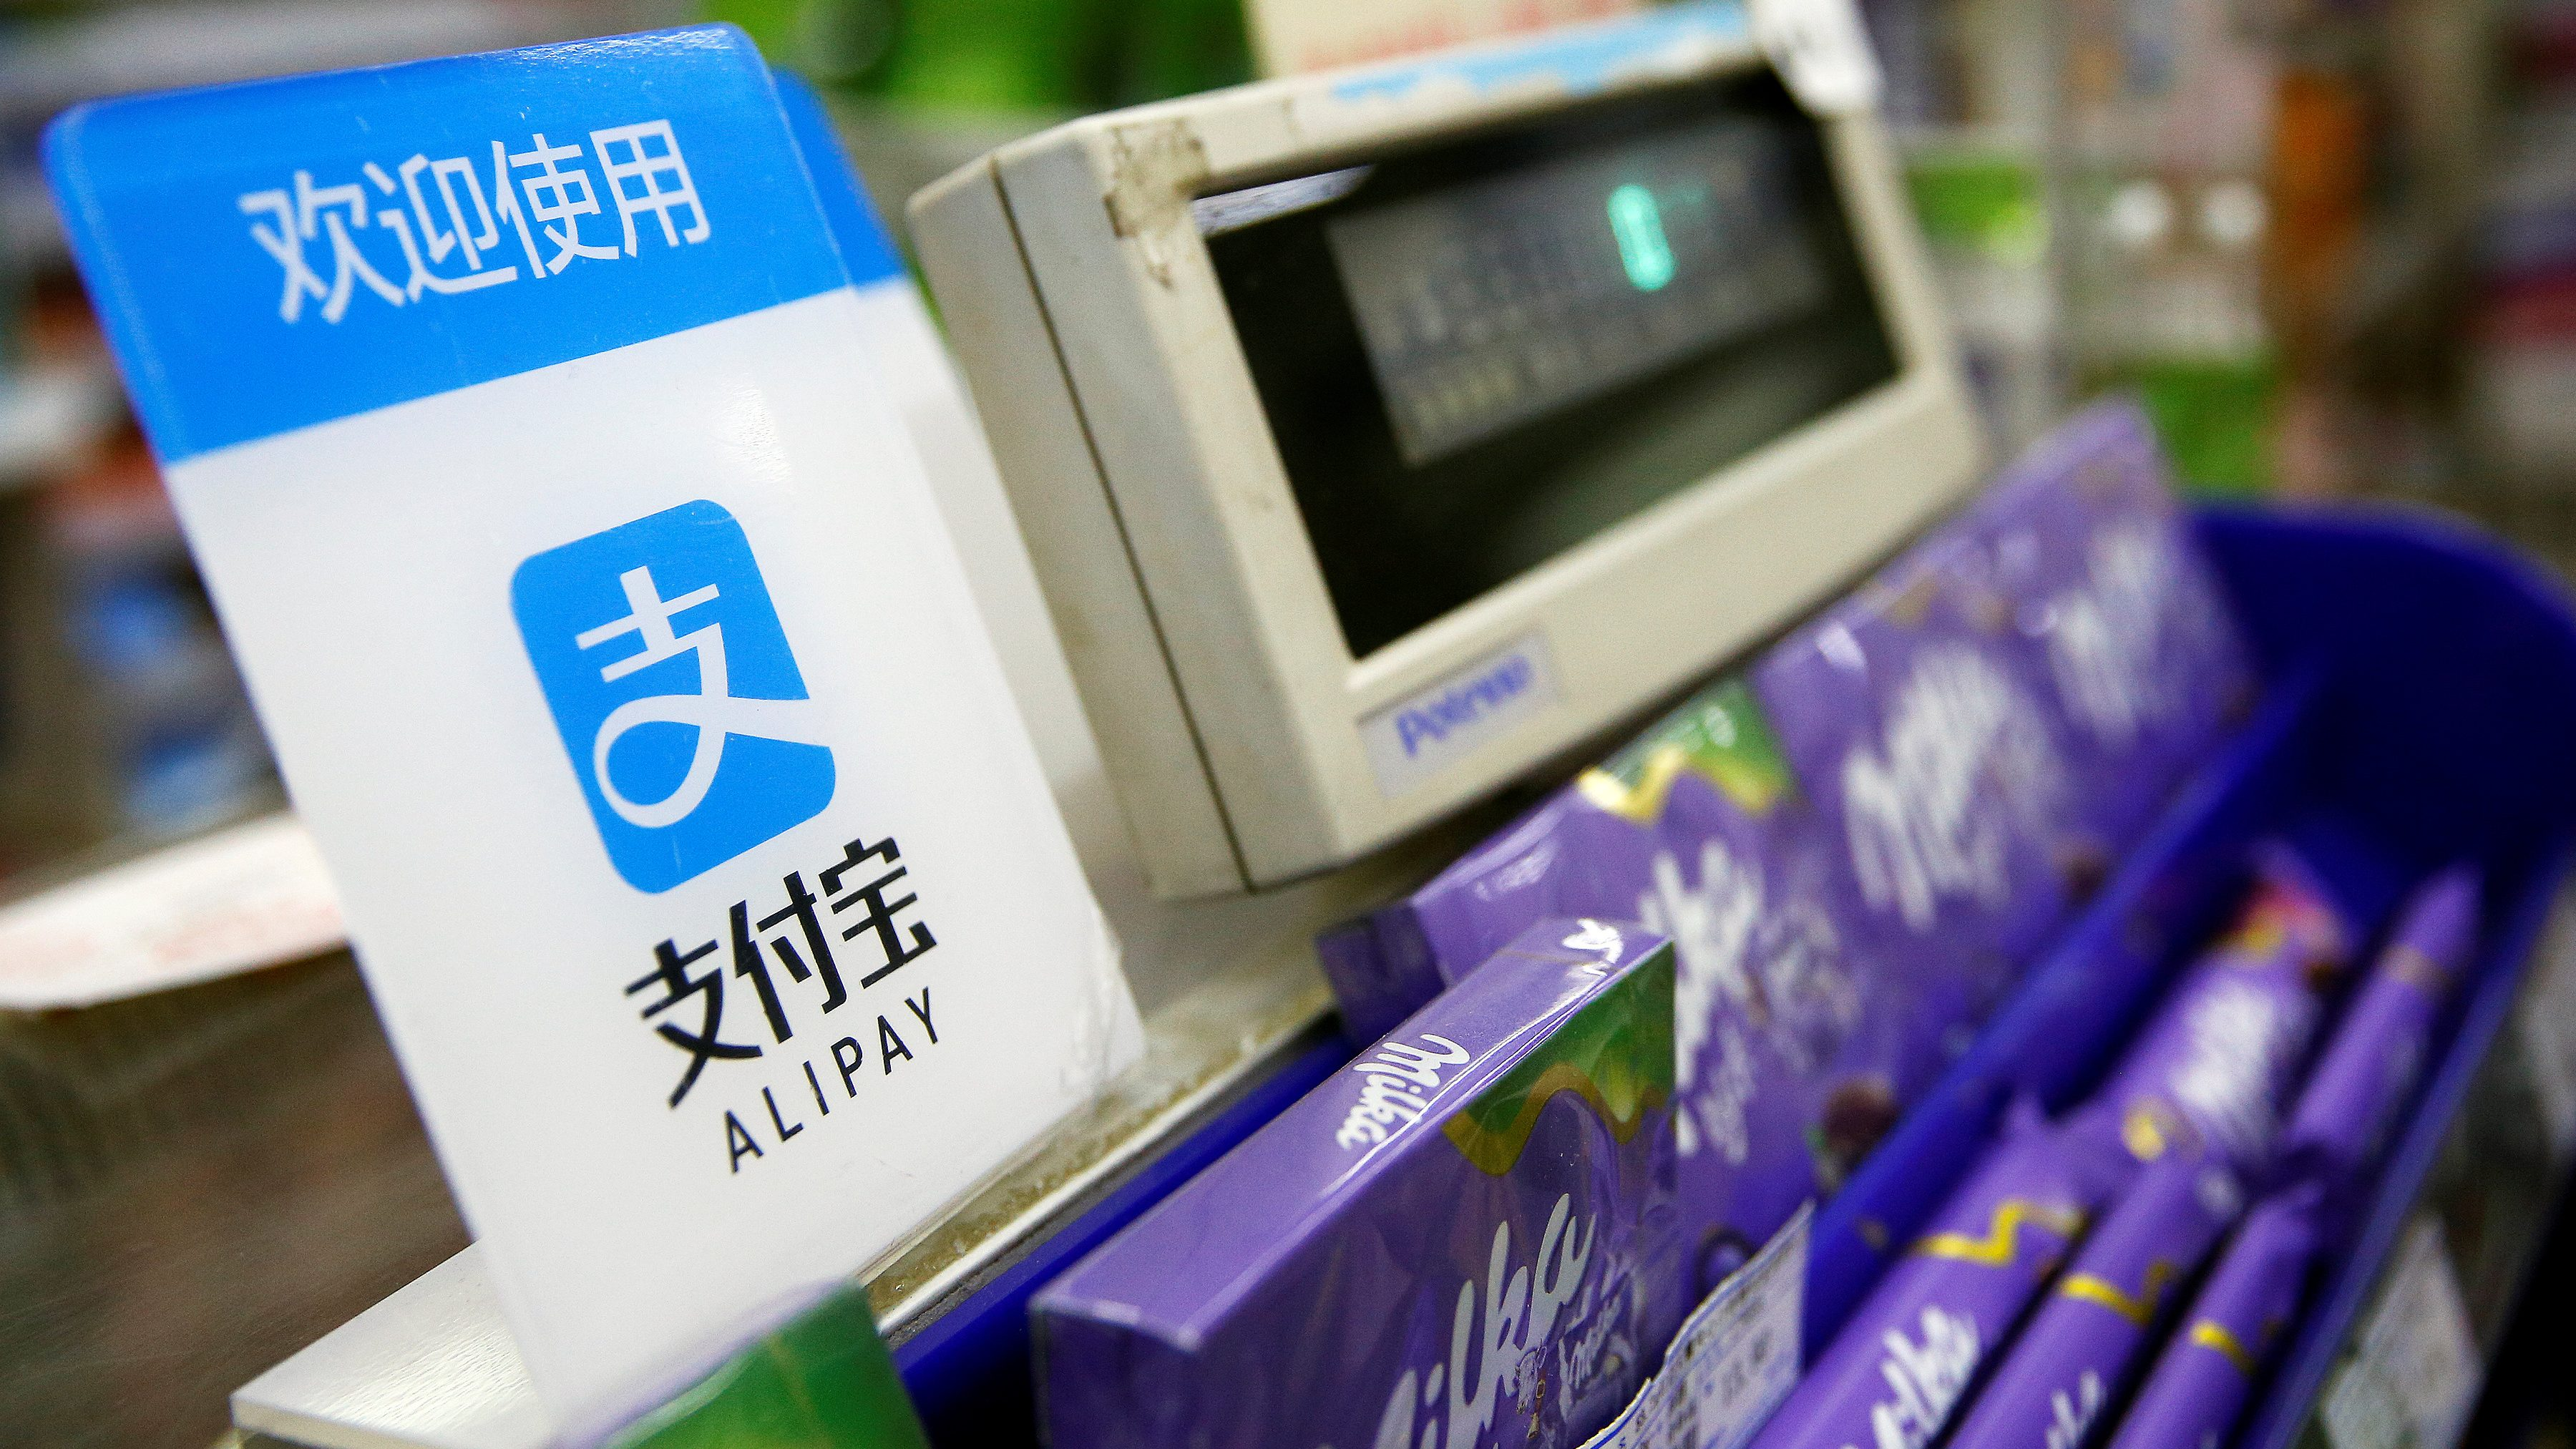 An Alipay logo is seen at a cashier in Shanghai January 12, 2017.  This logo has been updated and is no longer in use.